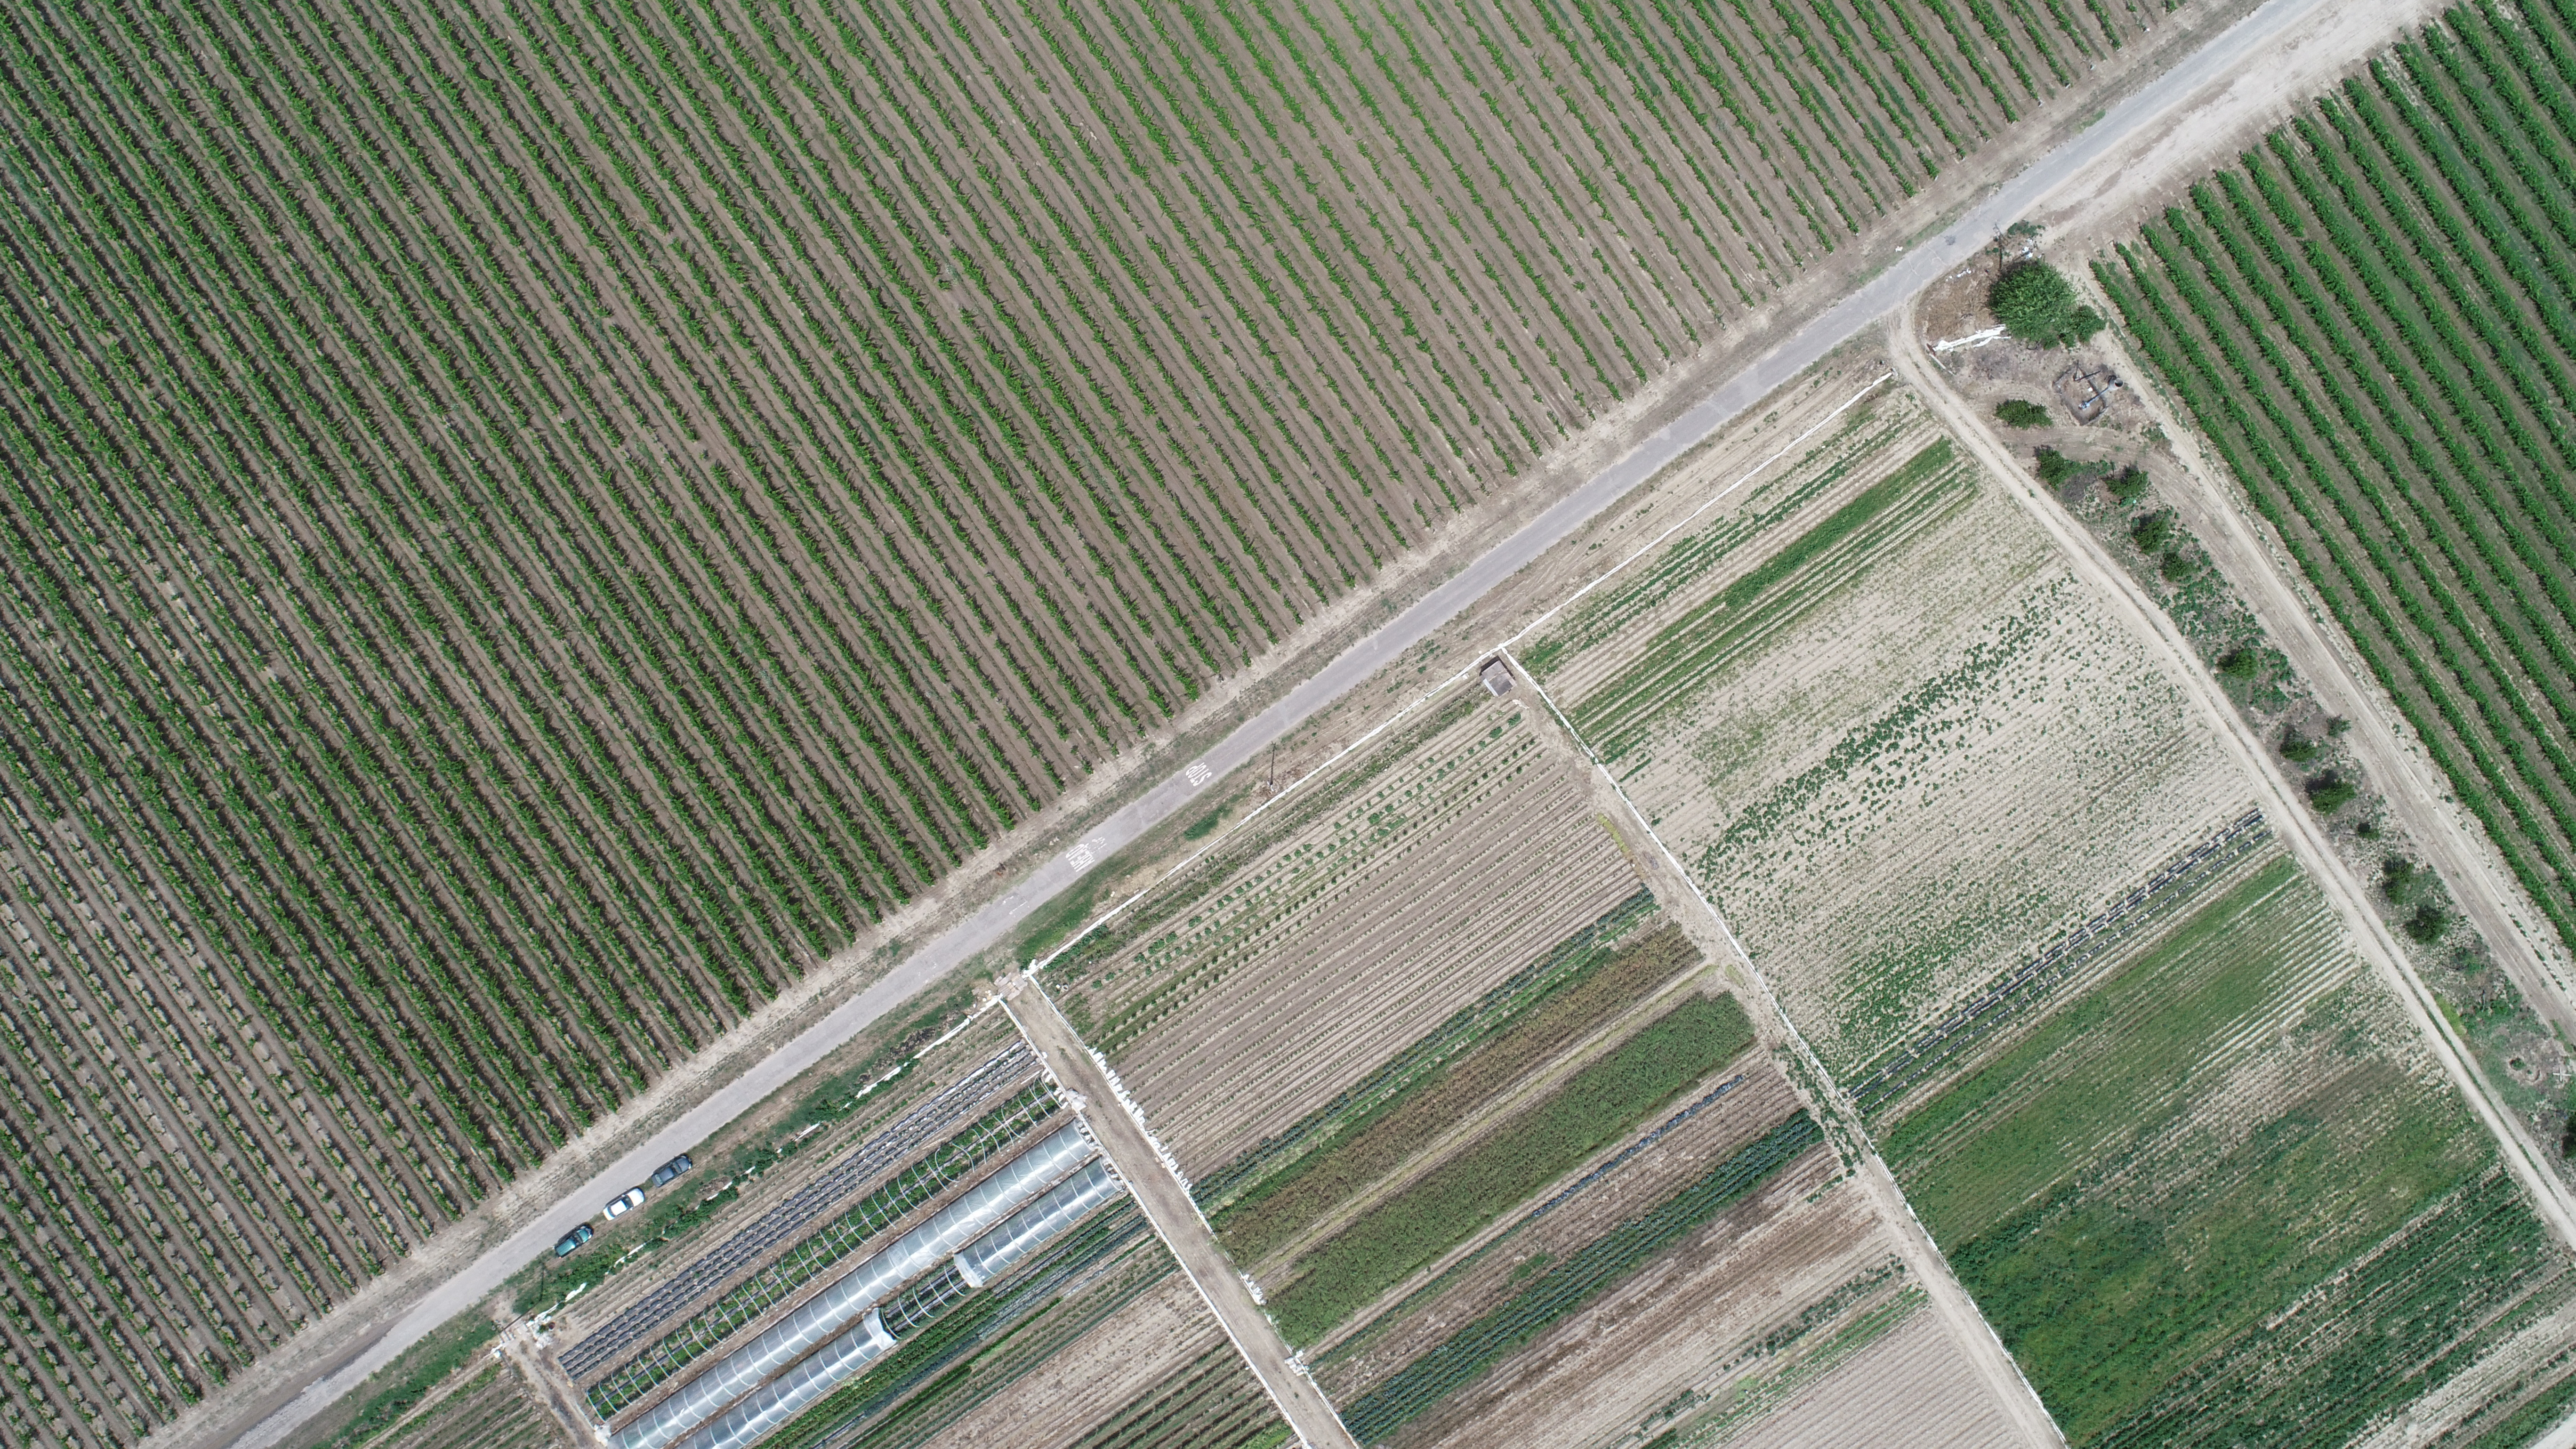 aerial image captured by a drone shows the visual differences between polyculture and monoculture farms